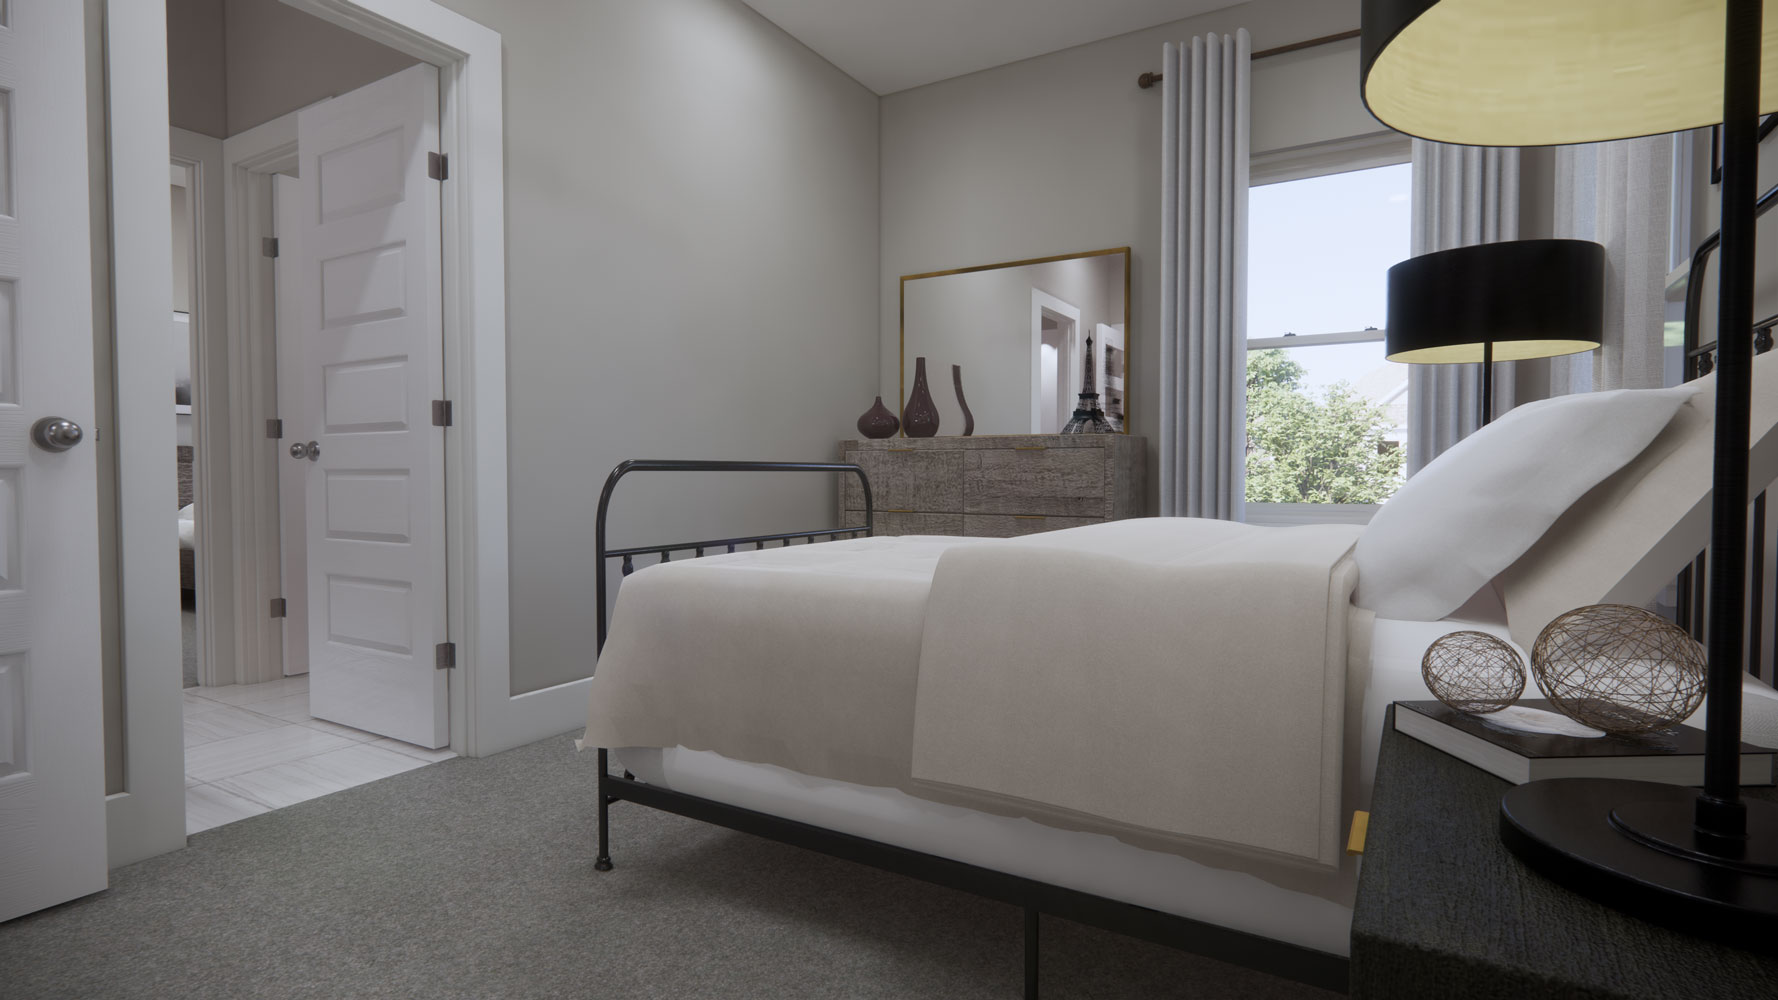 Bedrooms with Attached Bathrooms at Echelon at Reverchon Bluffs in Dallas, Texas